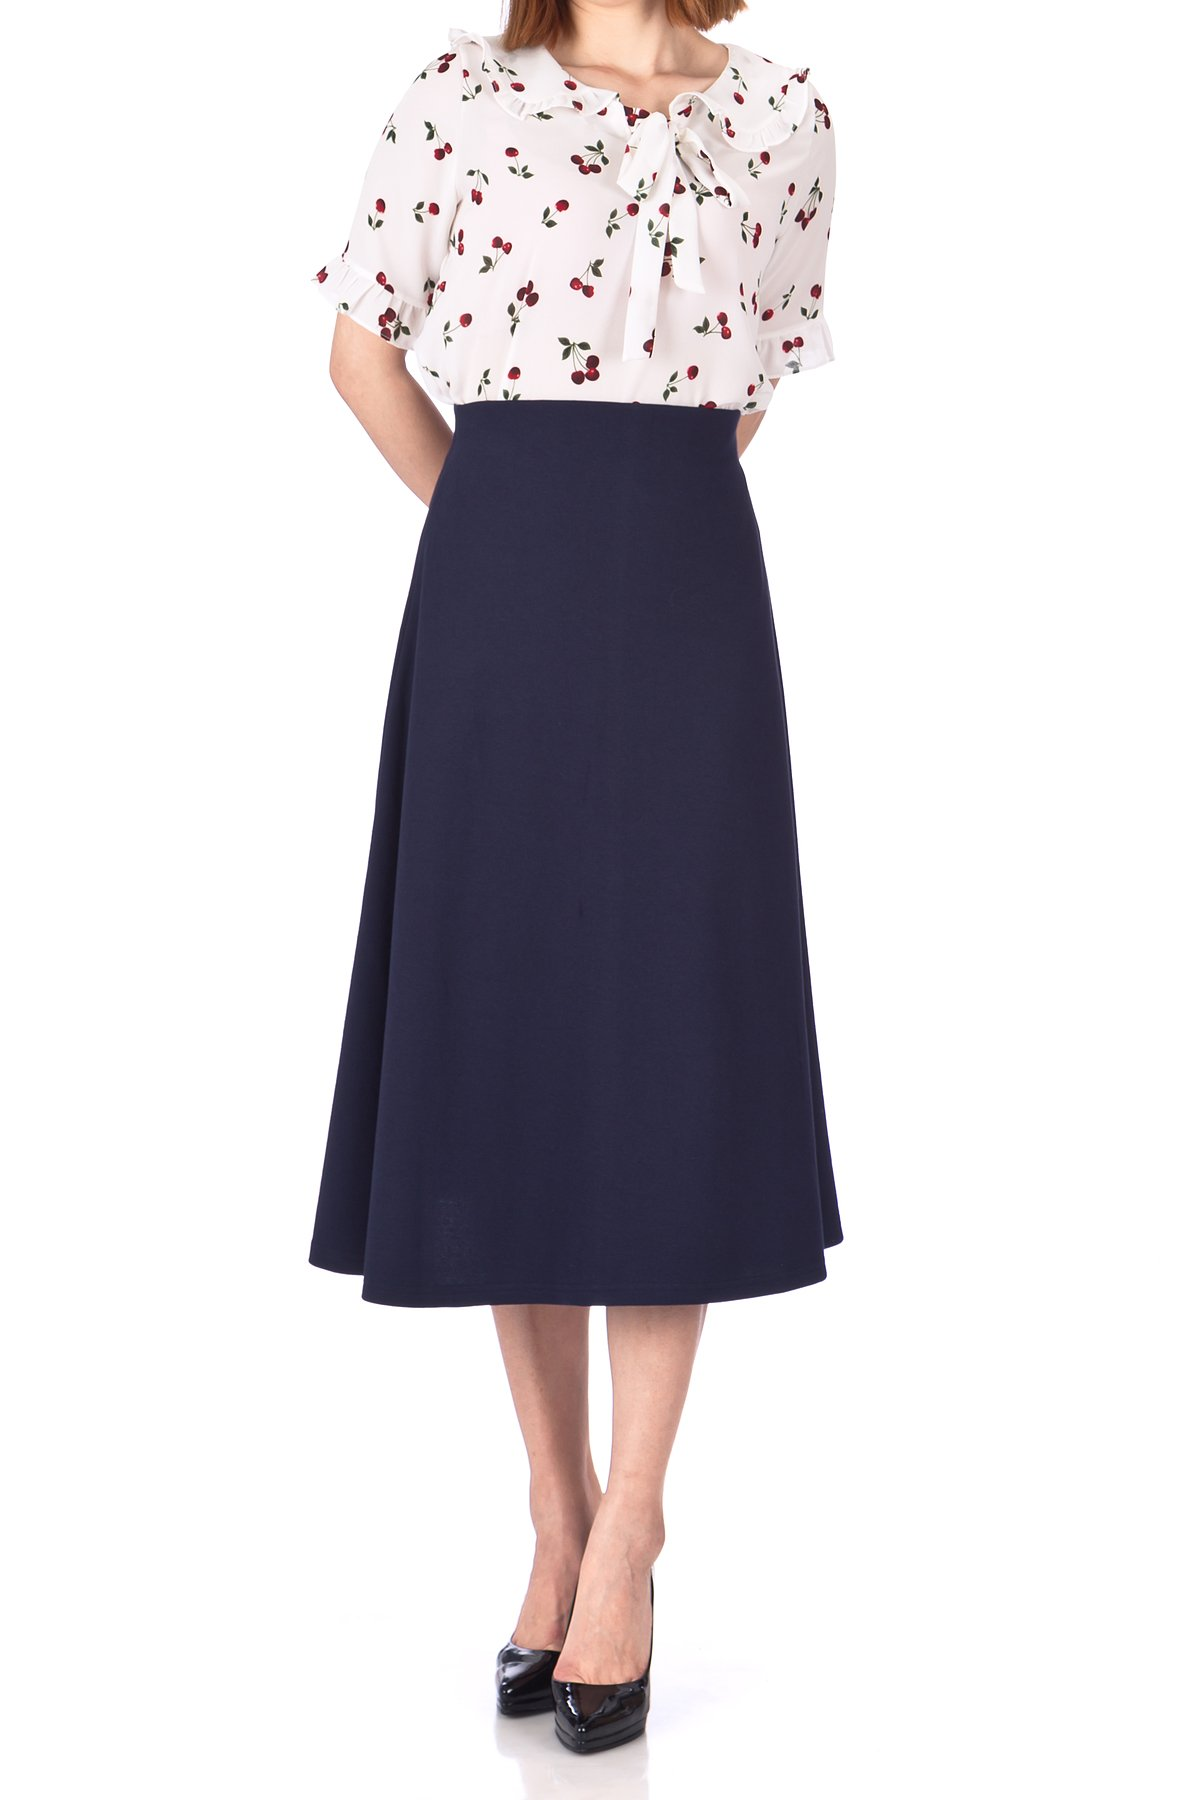 Elastic Waist A line Flared Long Skirt Navy 02 1